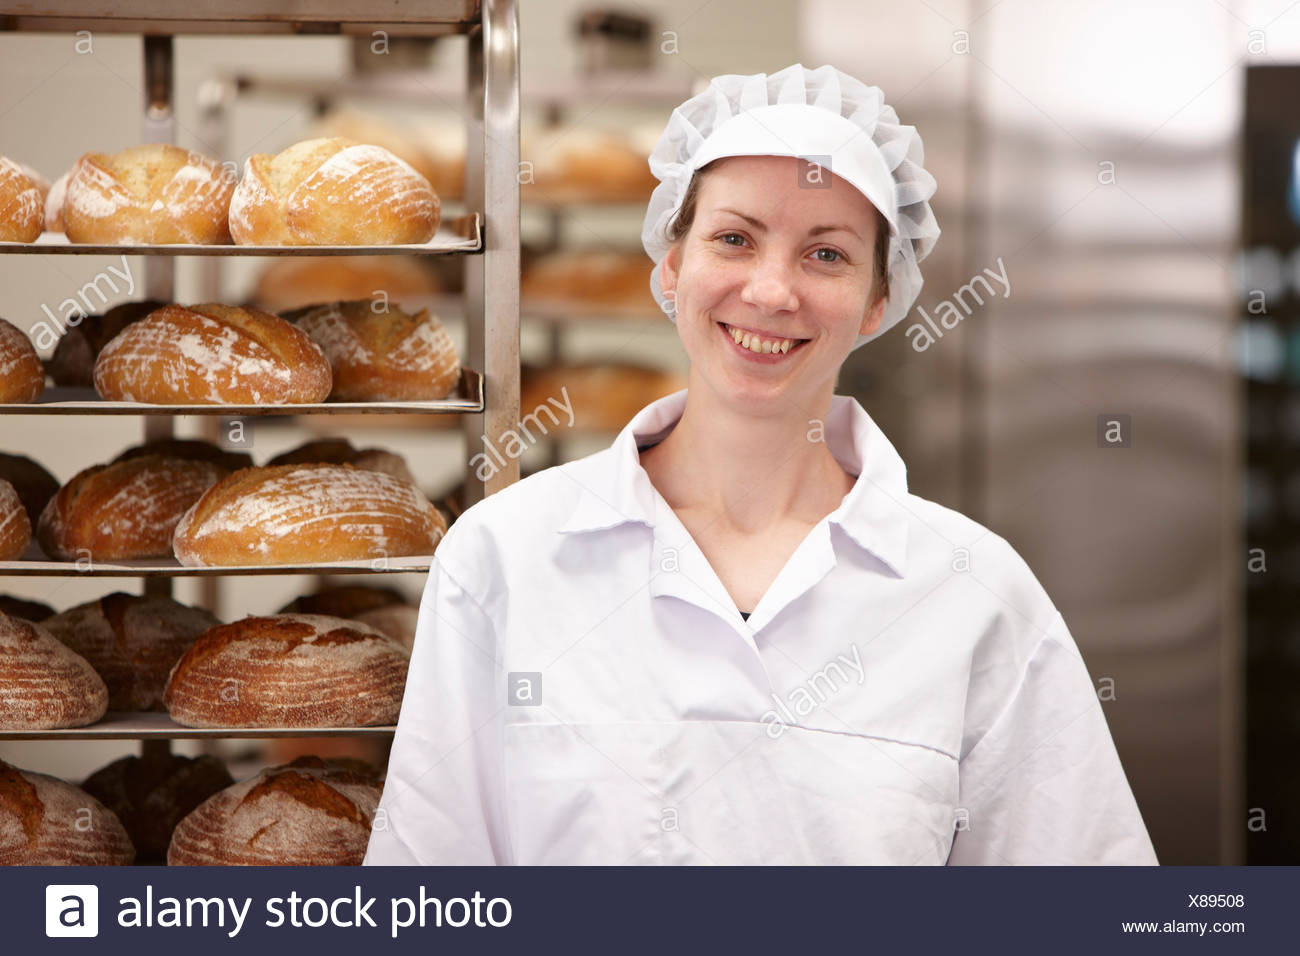 Smiling chef standing in kitchen Photo Stock